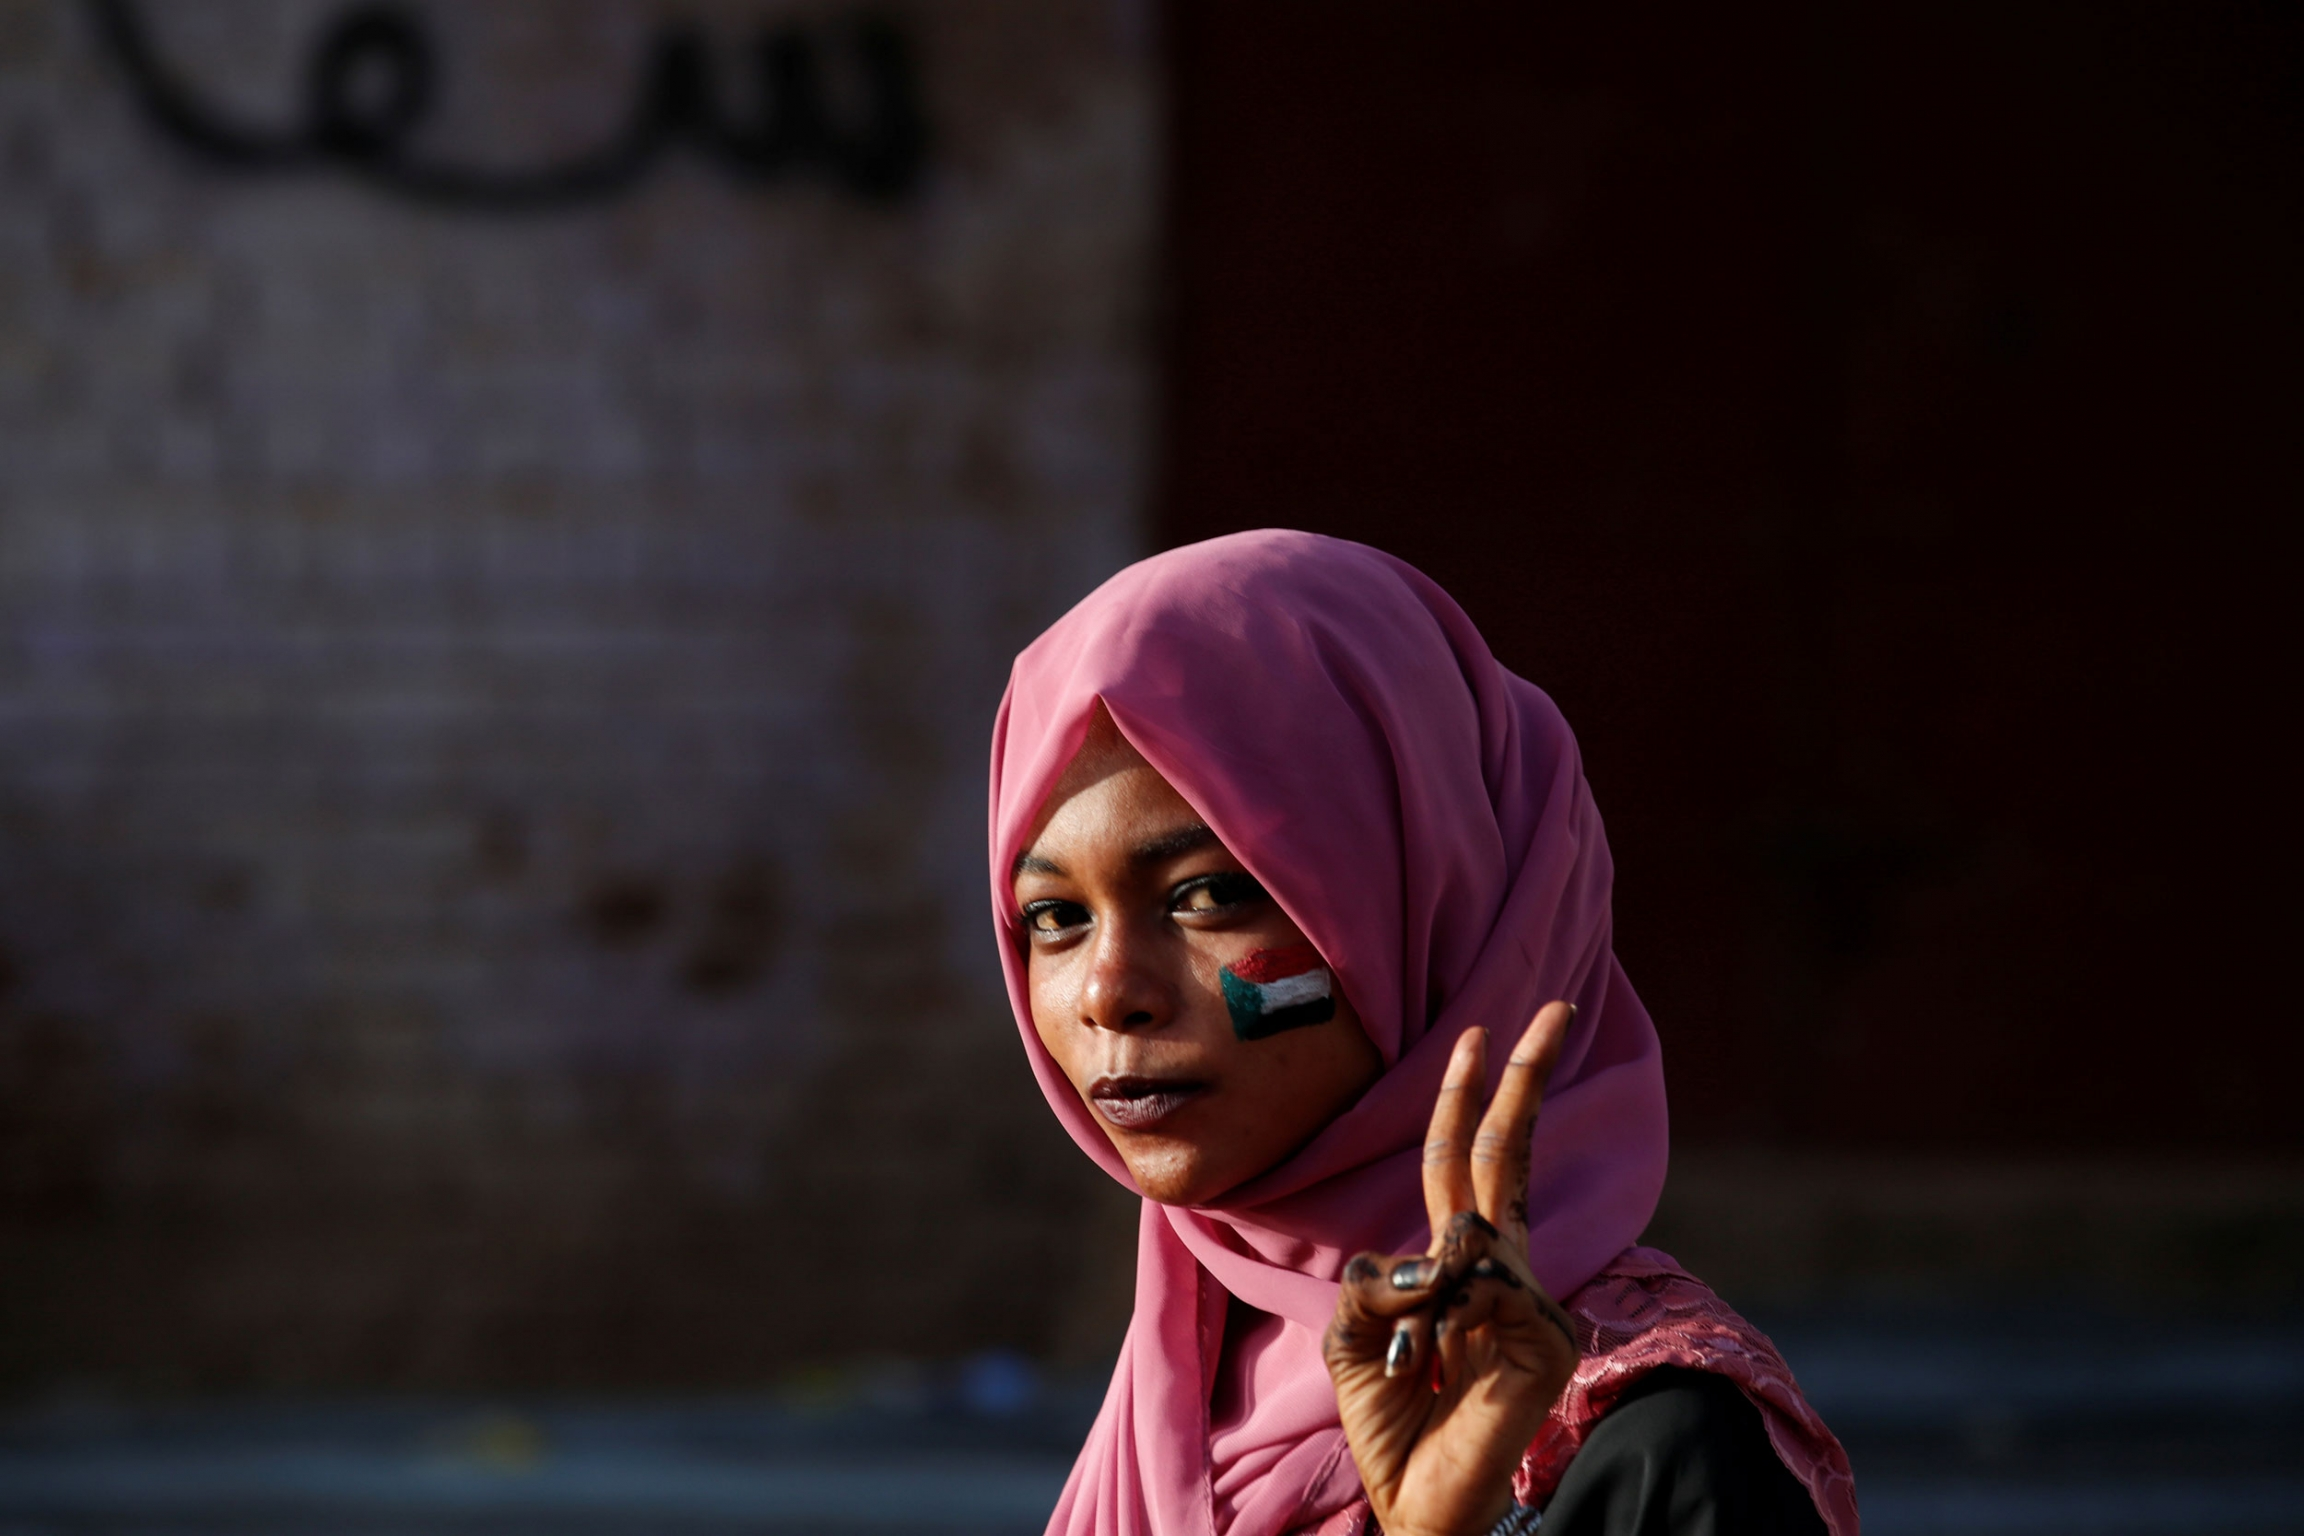 A woman is shown wearing a pink headscarf and with a Sudanese flag painted on her cheek.